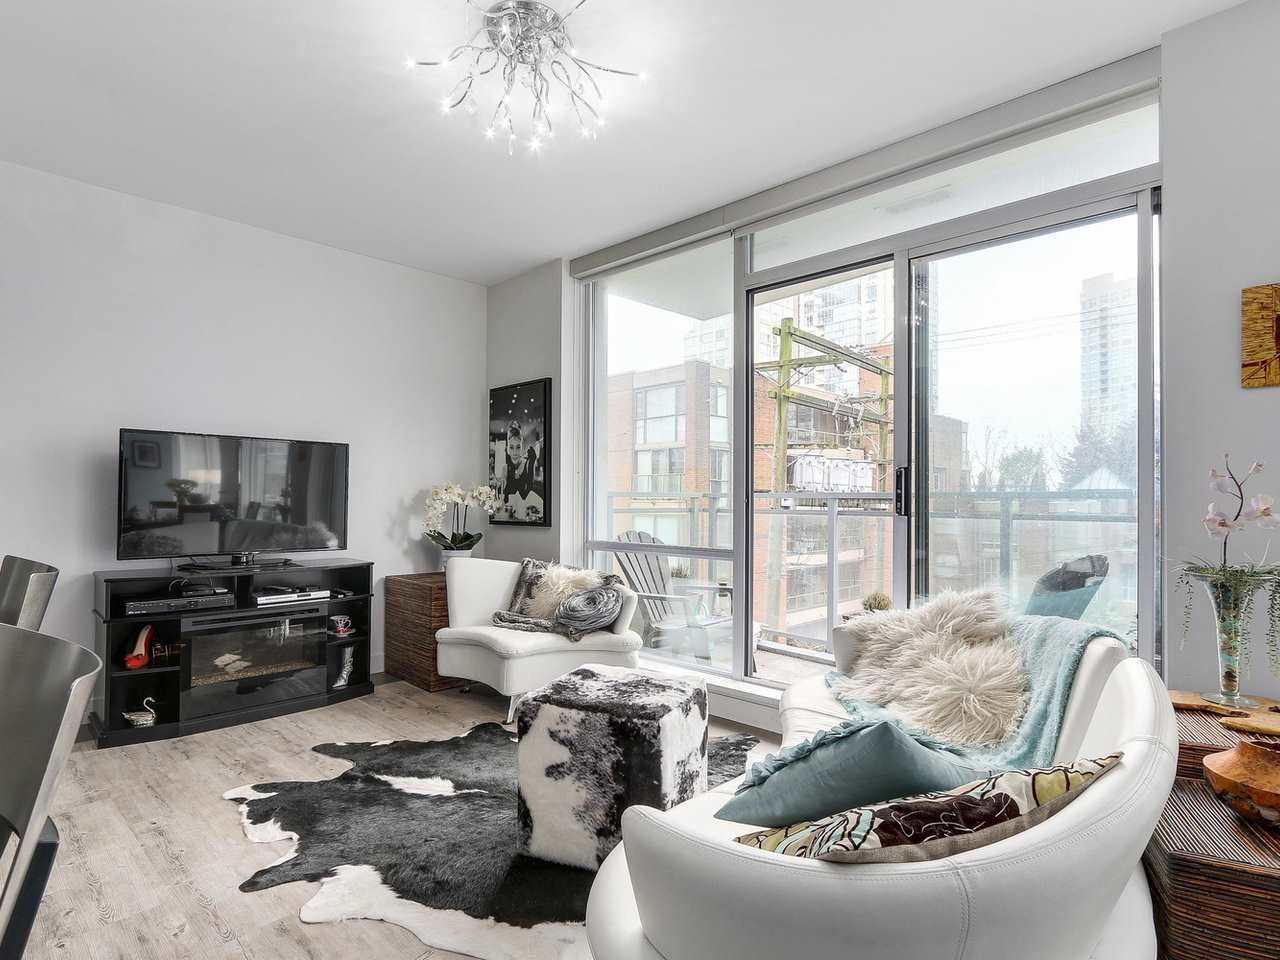 Photo 3: Photos: 401 1455 HOWE STREET in Vancouver: Yaletown Condo for sale (Vancouver West)  : MLS®# R2145939